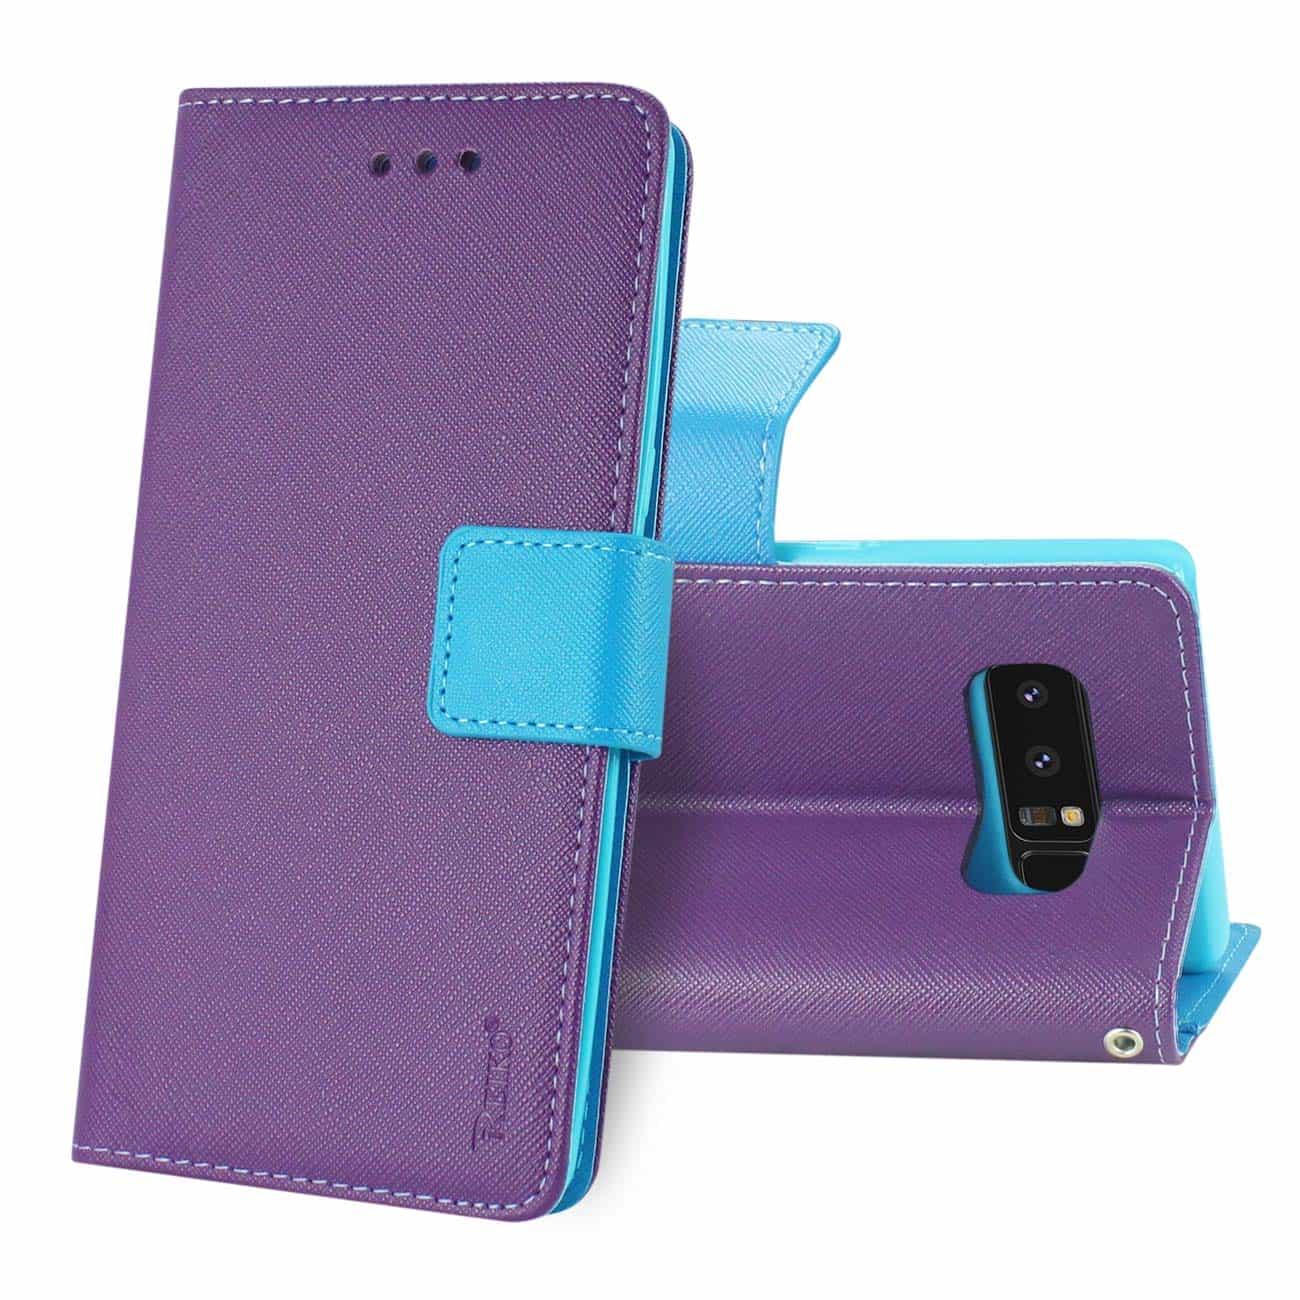 SAMSUNG GALAXY NOTE 8 3-IN-1 WALLET CASE IN PURPLE